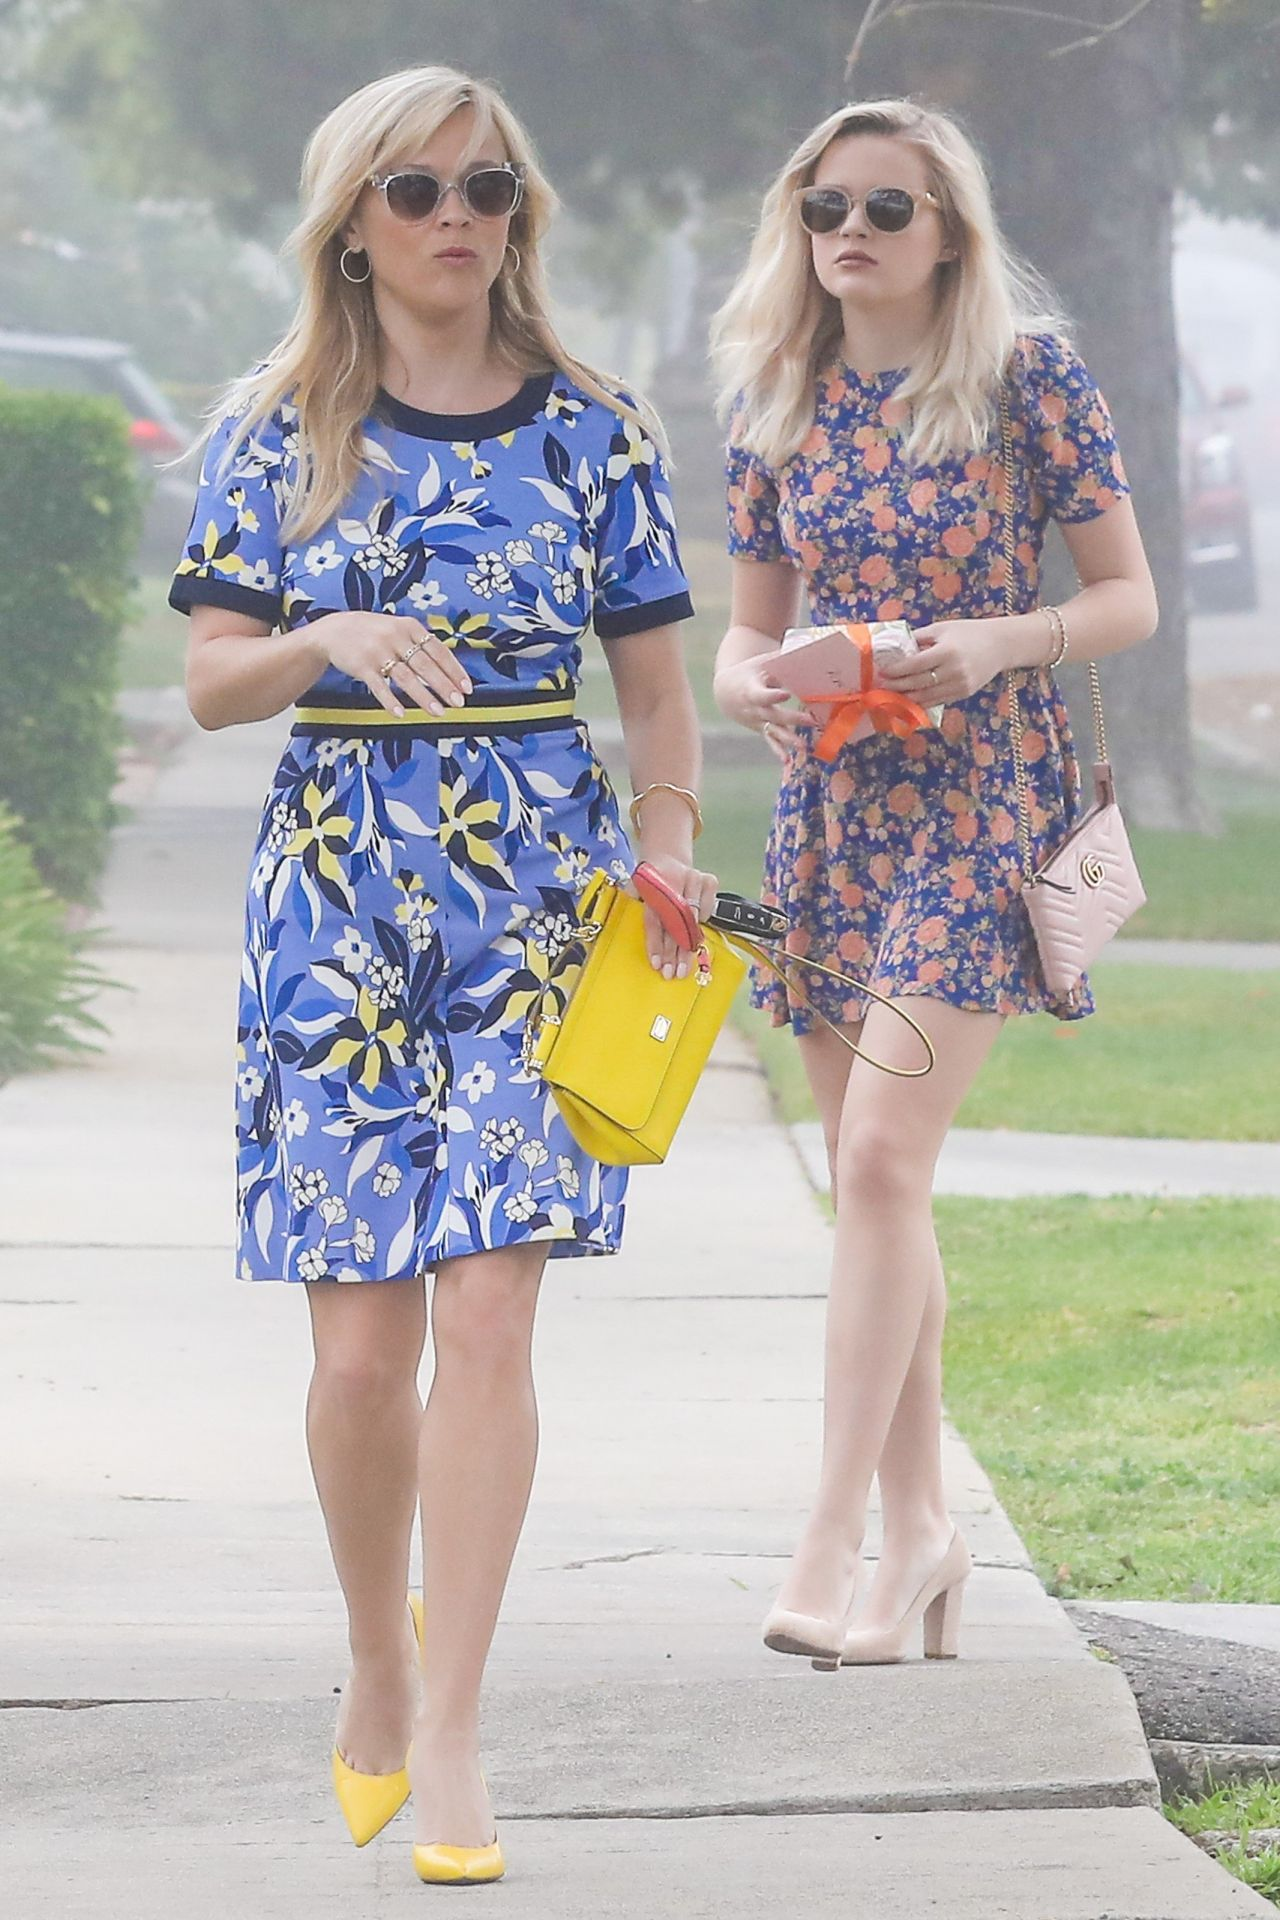 Reese Witherspoon Out With Her Daughter Ava Elizabeth